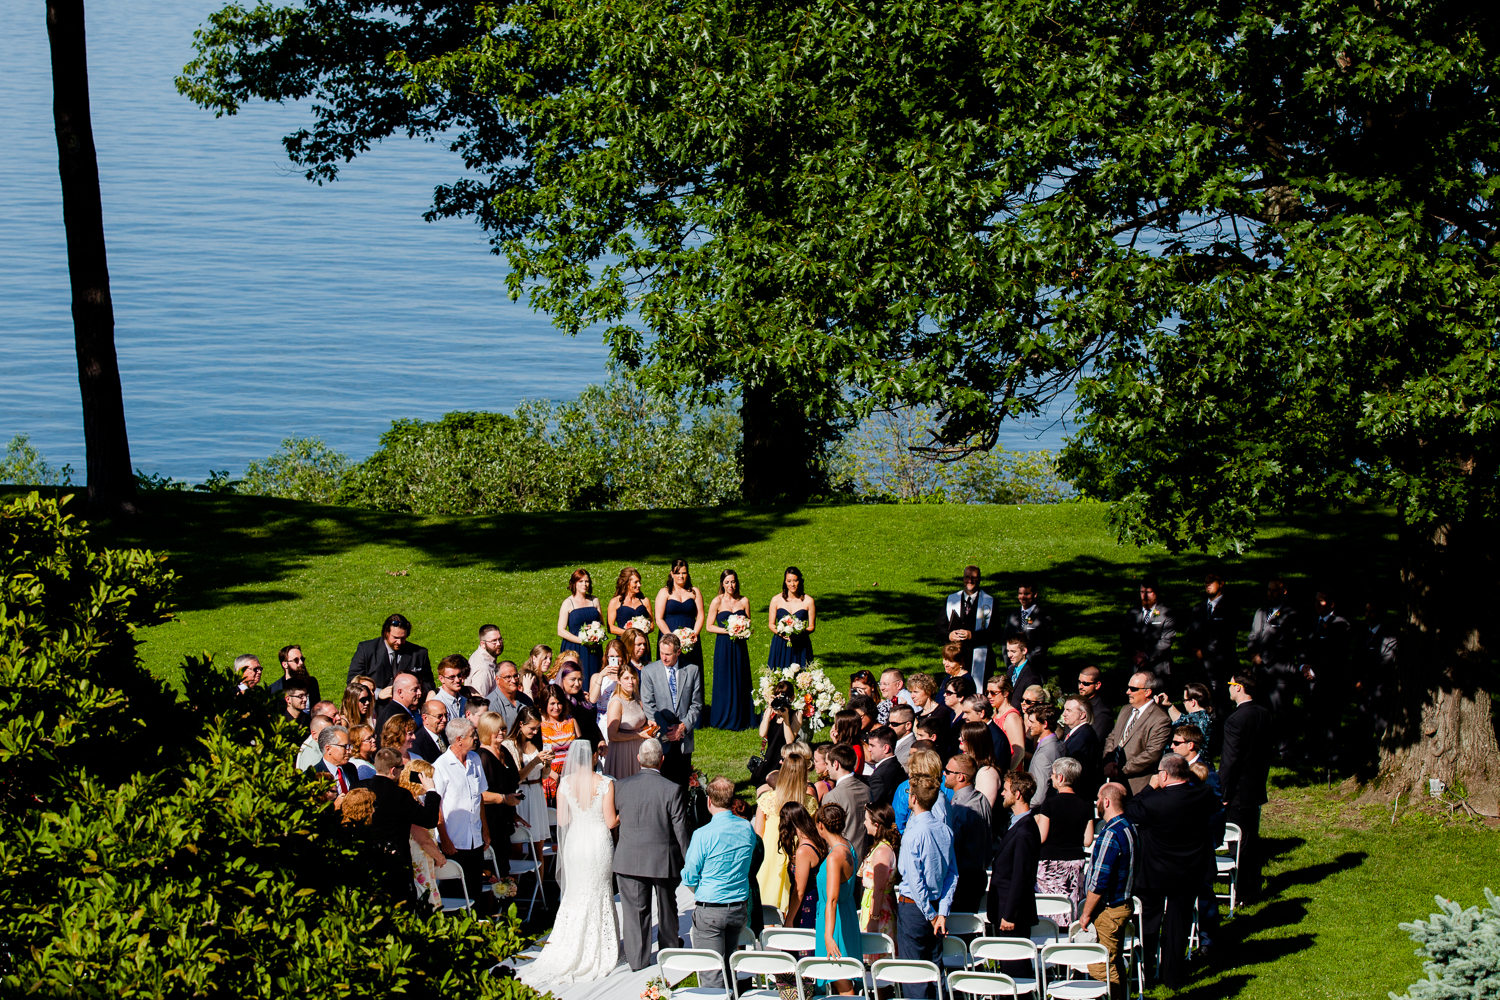 aerial view of bride walking down the aisle at Belhurst Castle